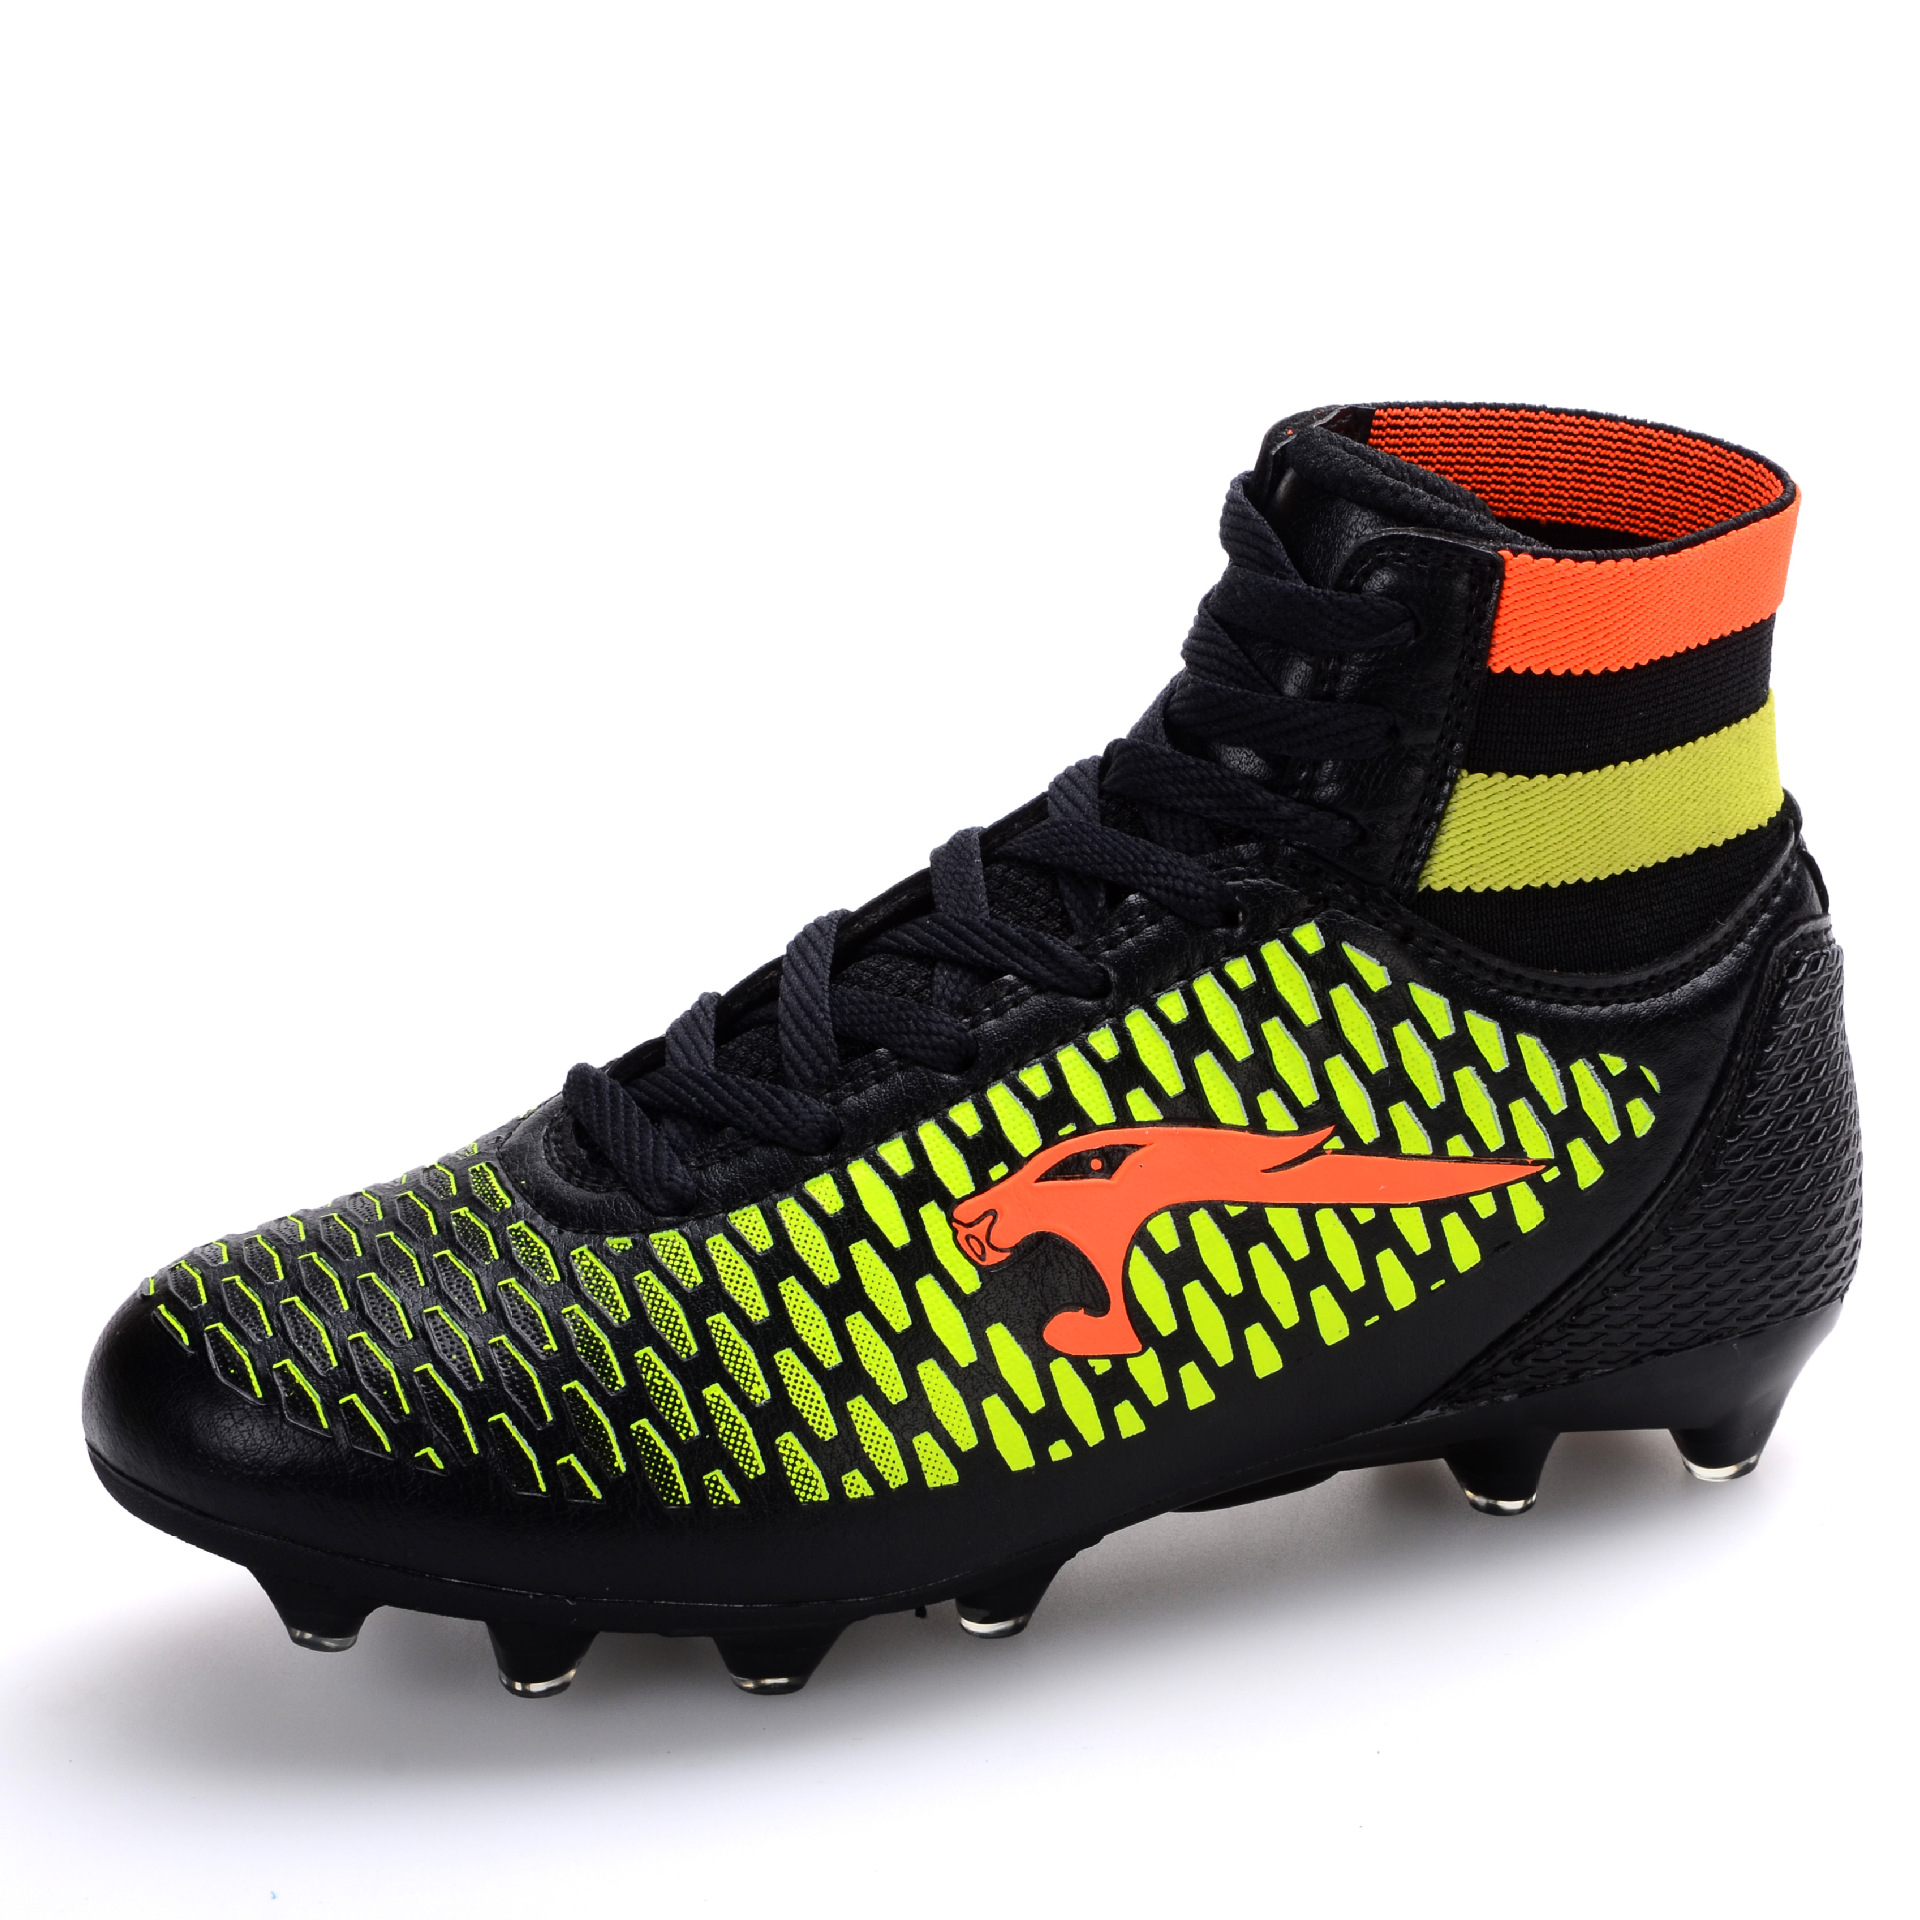 Compare Prices on Free Soccer Shoes- Online Shopping/Buy Low Price ...